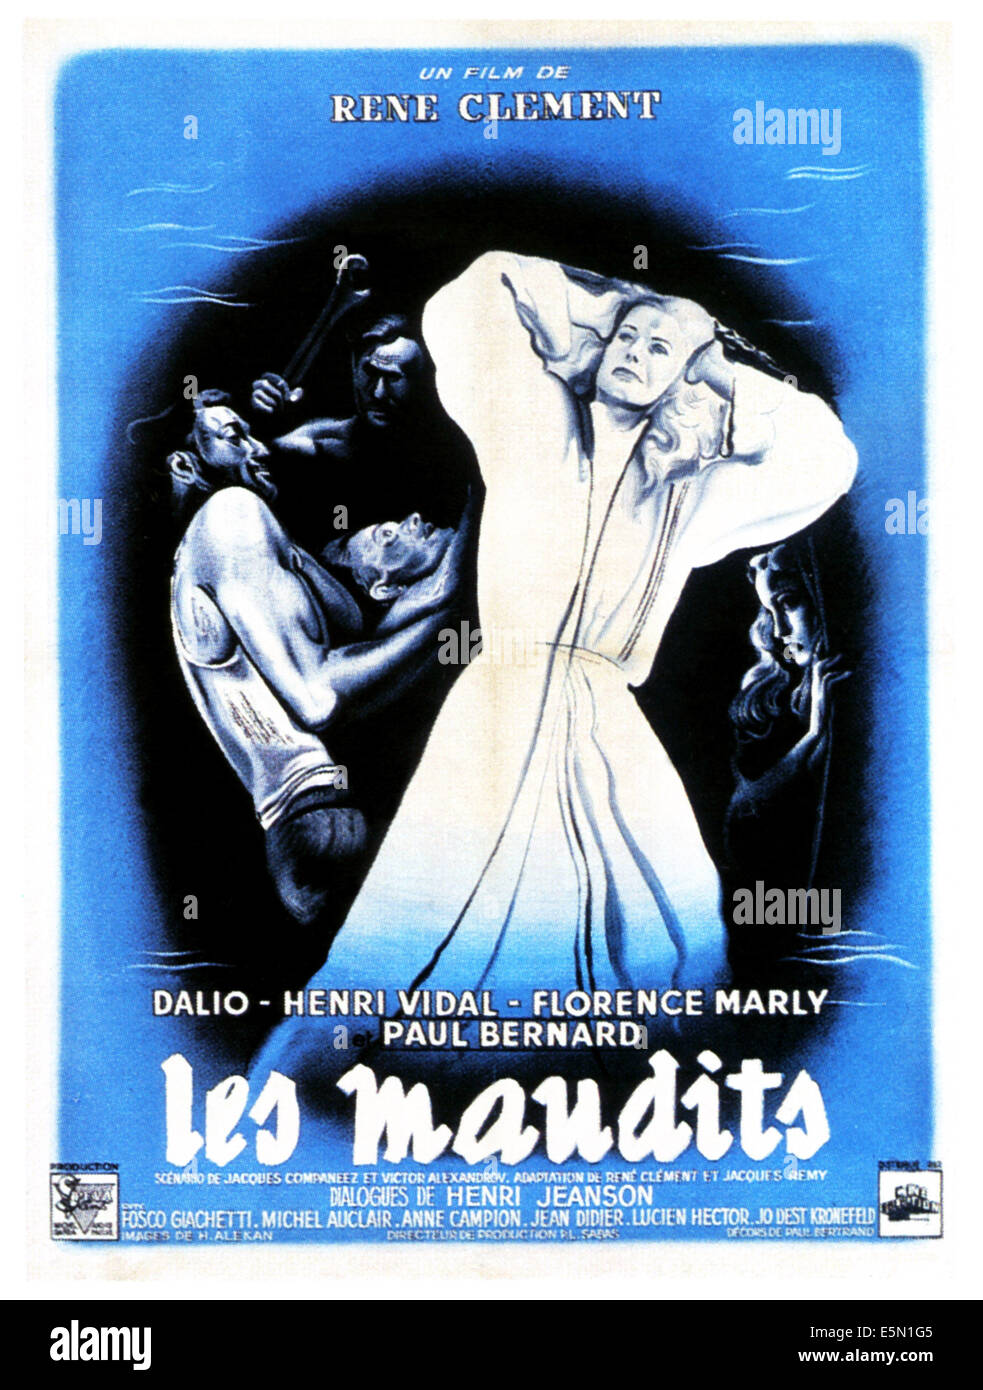 THE DAMNED, (aka LES MAUDITS), French poster art, 1947 - Stock Image